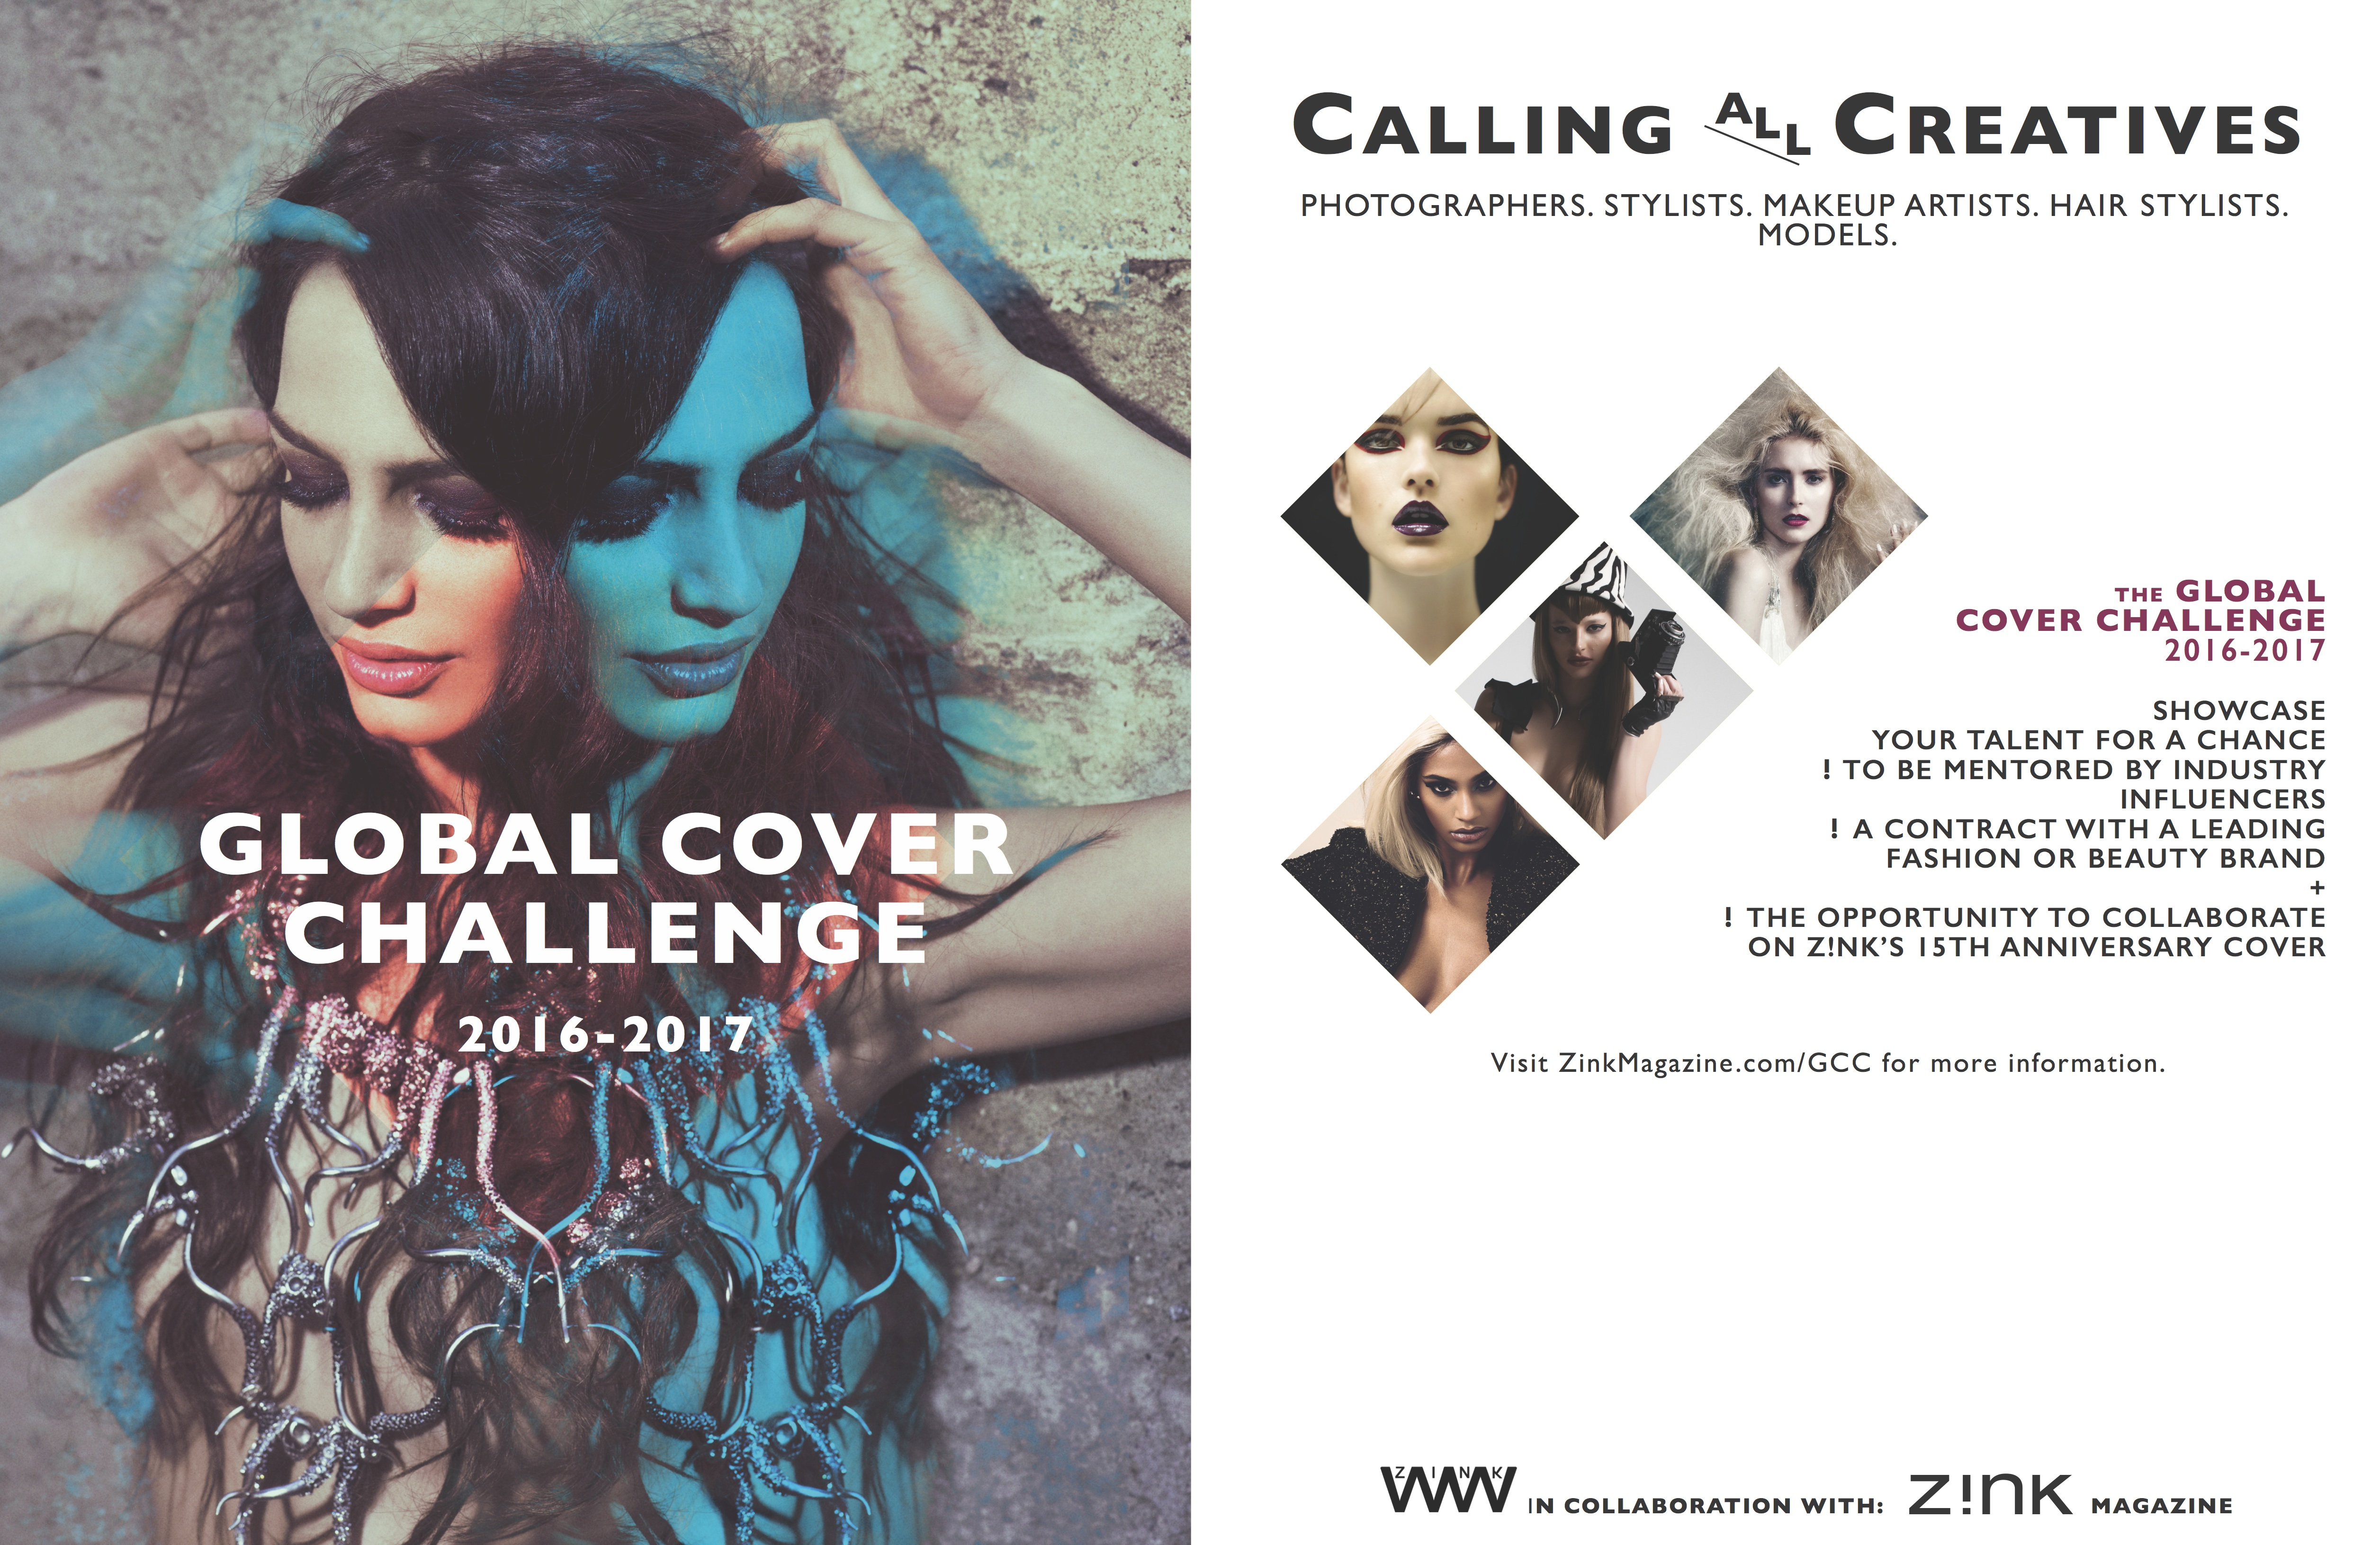 Global Cover Challenge - Z!NK